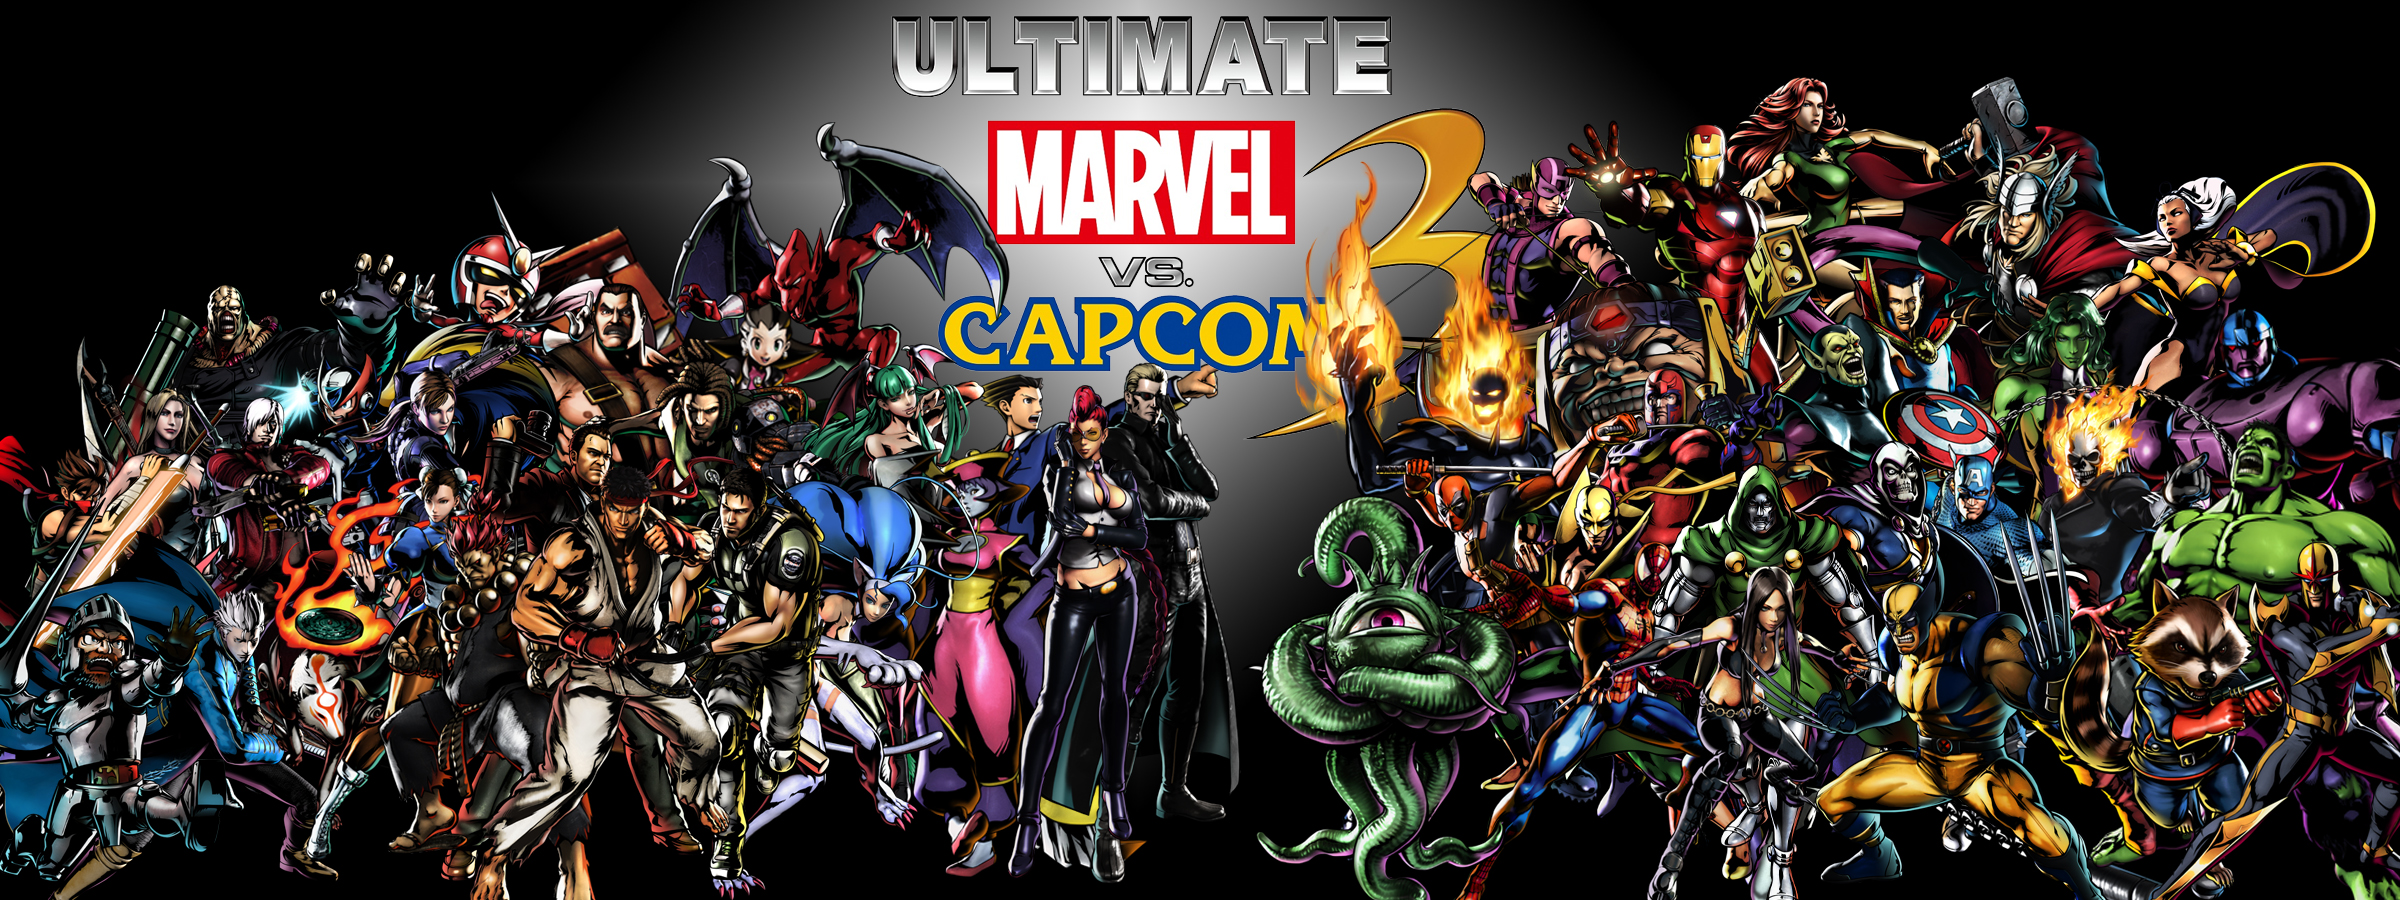 Ultimate marvel vs capcom 3 by pacduck